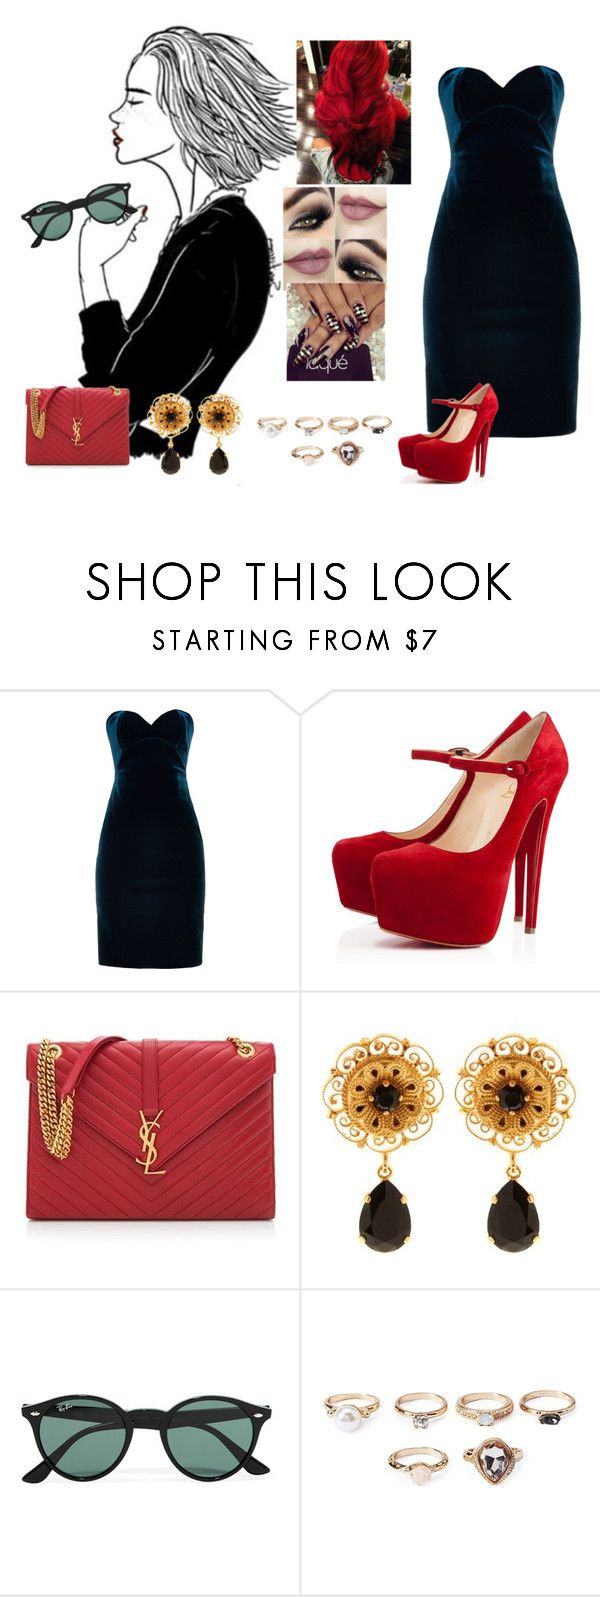 """""""Lovesong #Adele"""" by diane-ds ❤ liked on Polyvore featuring Emilio De La Morena, Christian Louboutin, Yves Saint Laurent, Dolce&Gabbana, Ray-Ban and Forever 21"""